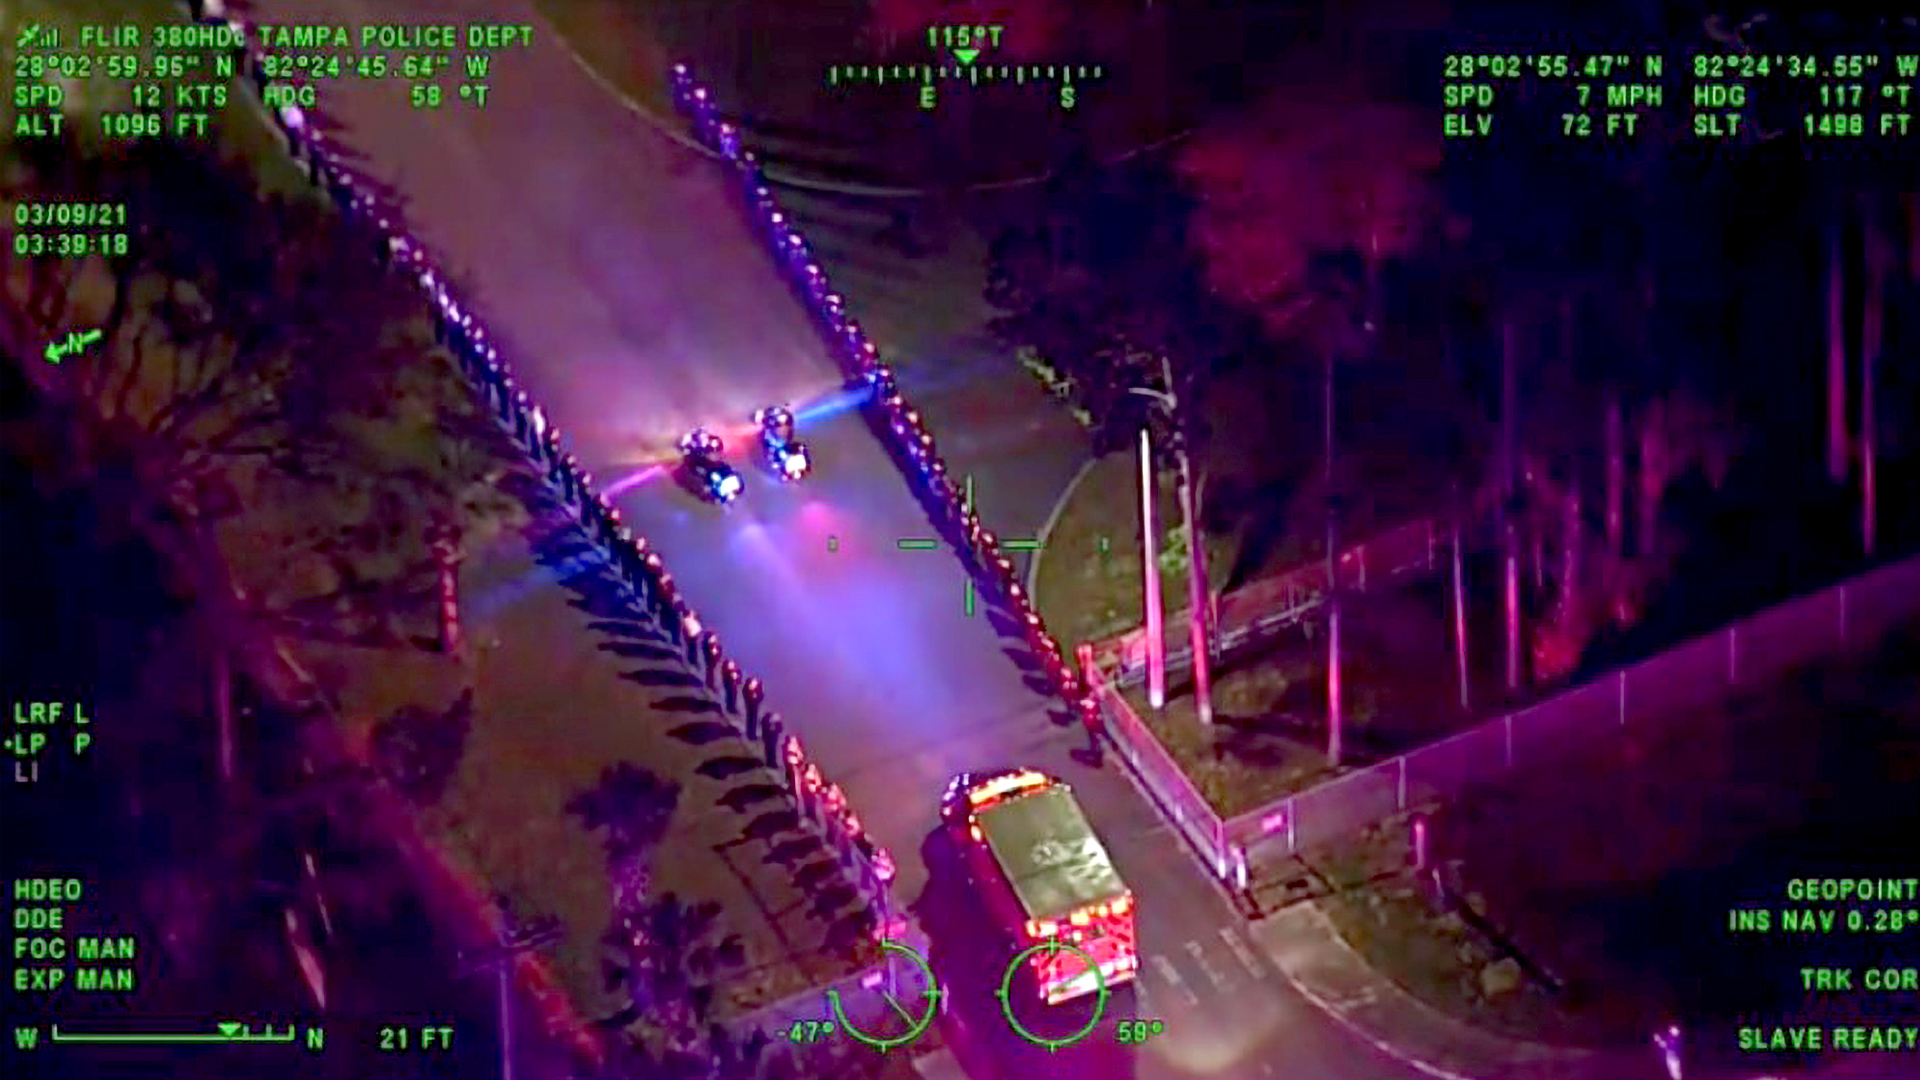 VIDEO: Fall Of Duty: Hero's Parade For Cop Who Died To Save Others From Horror Crash